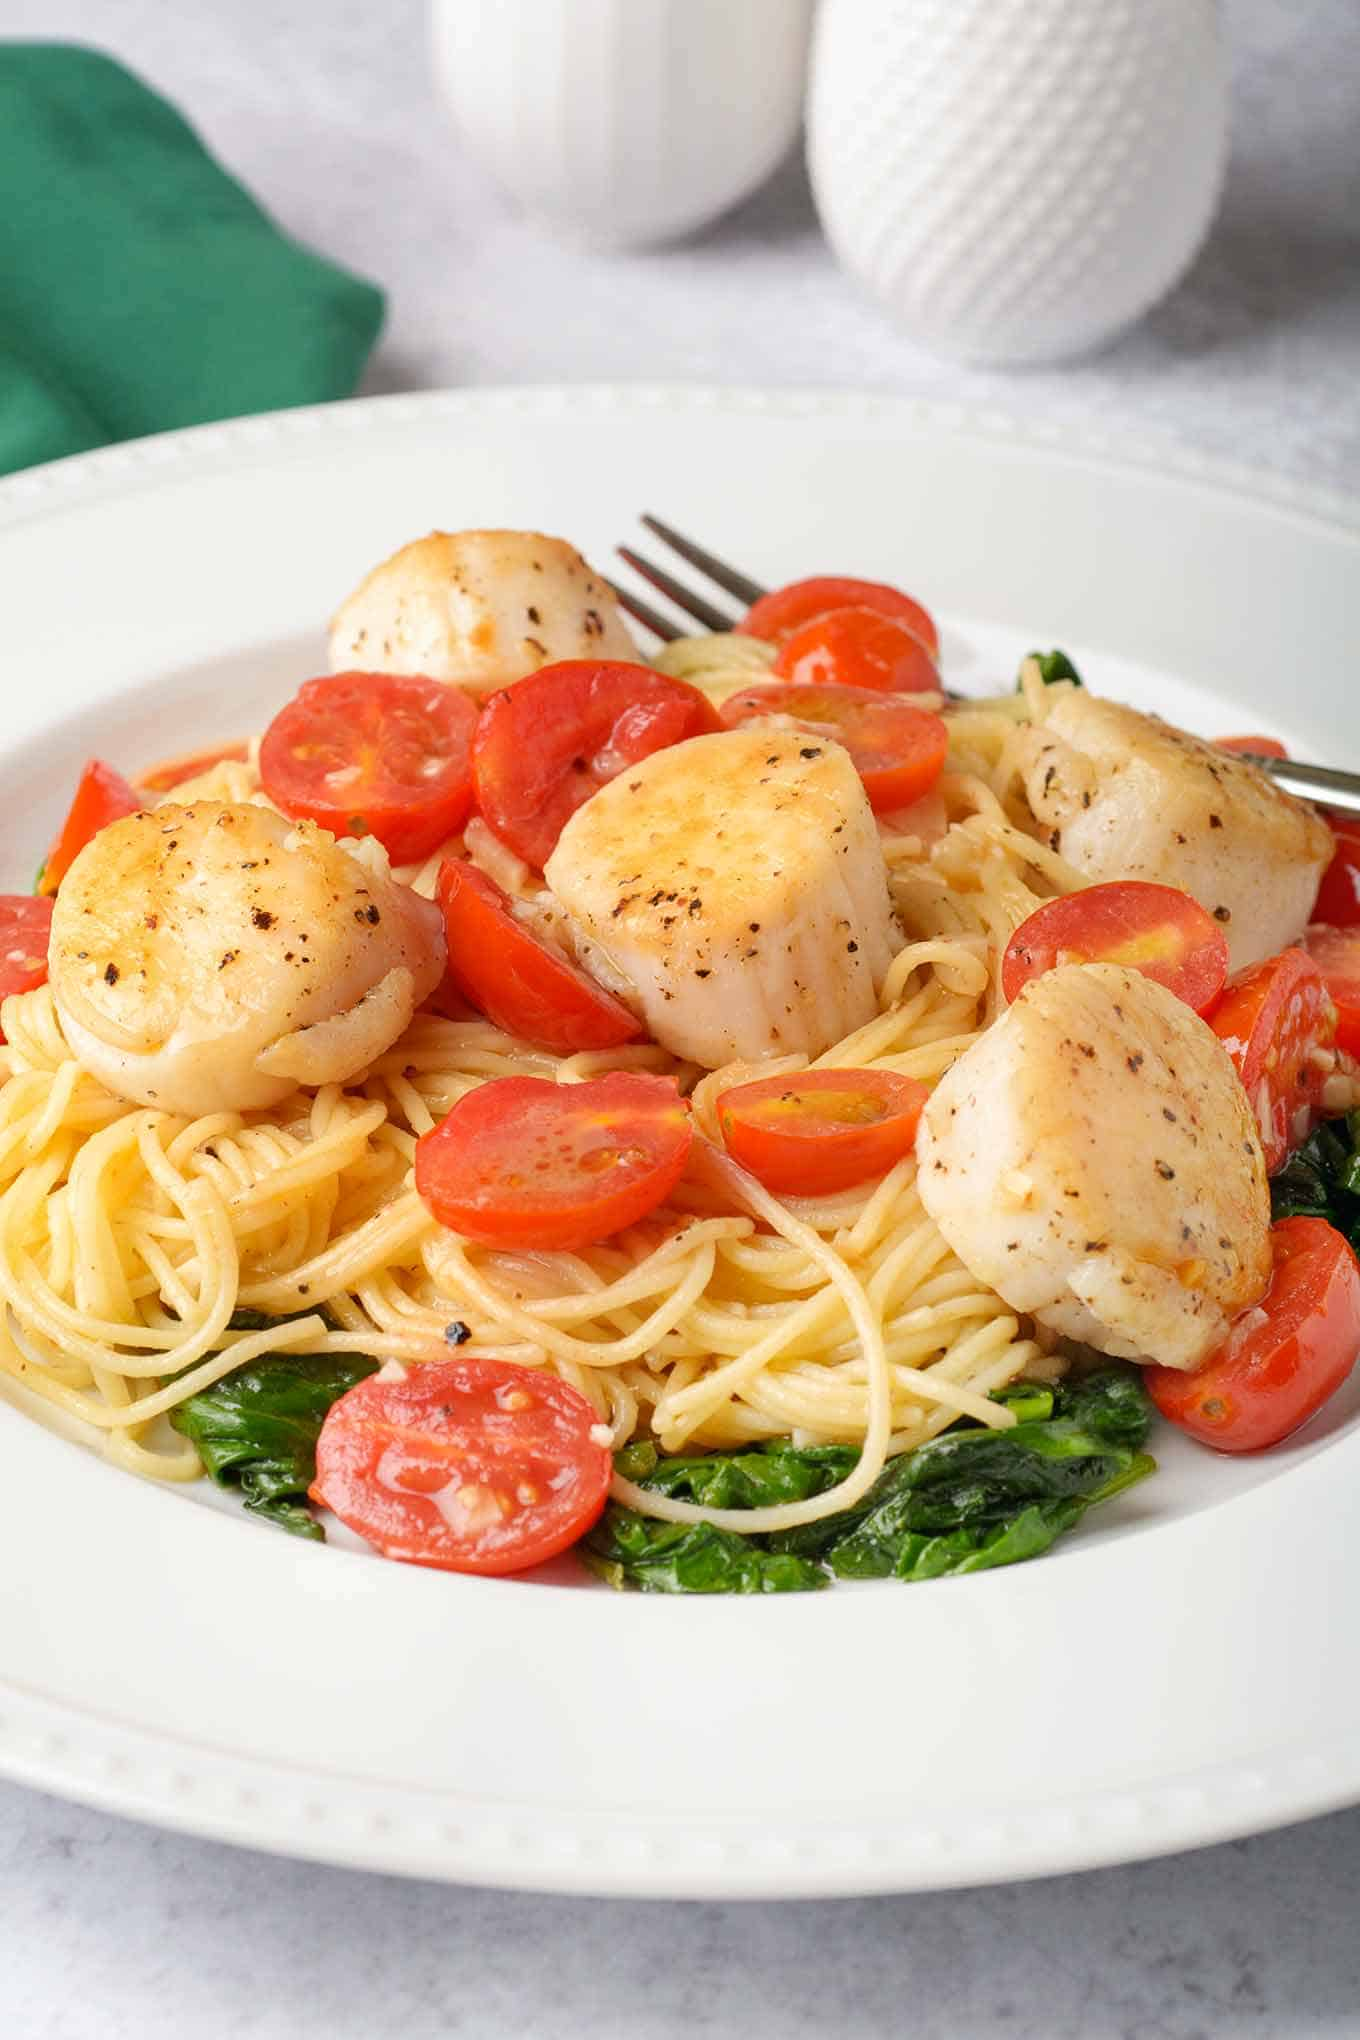 A serving of pasta, seared scallops and grape tomatoes tossed with white wine butter and served over a bed of sautéed spinach.